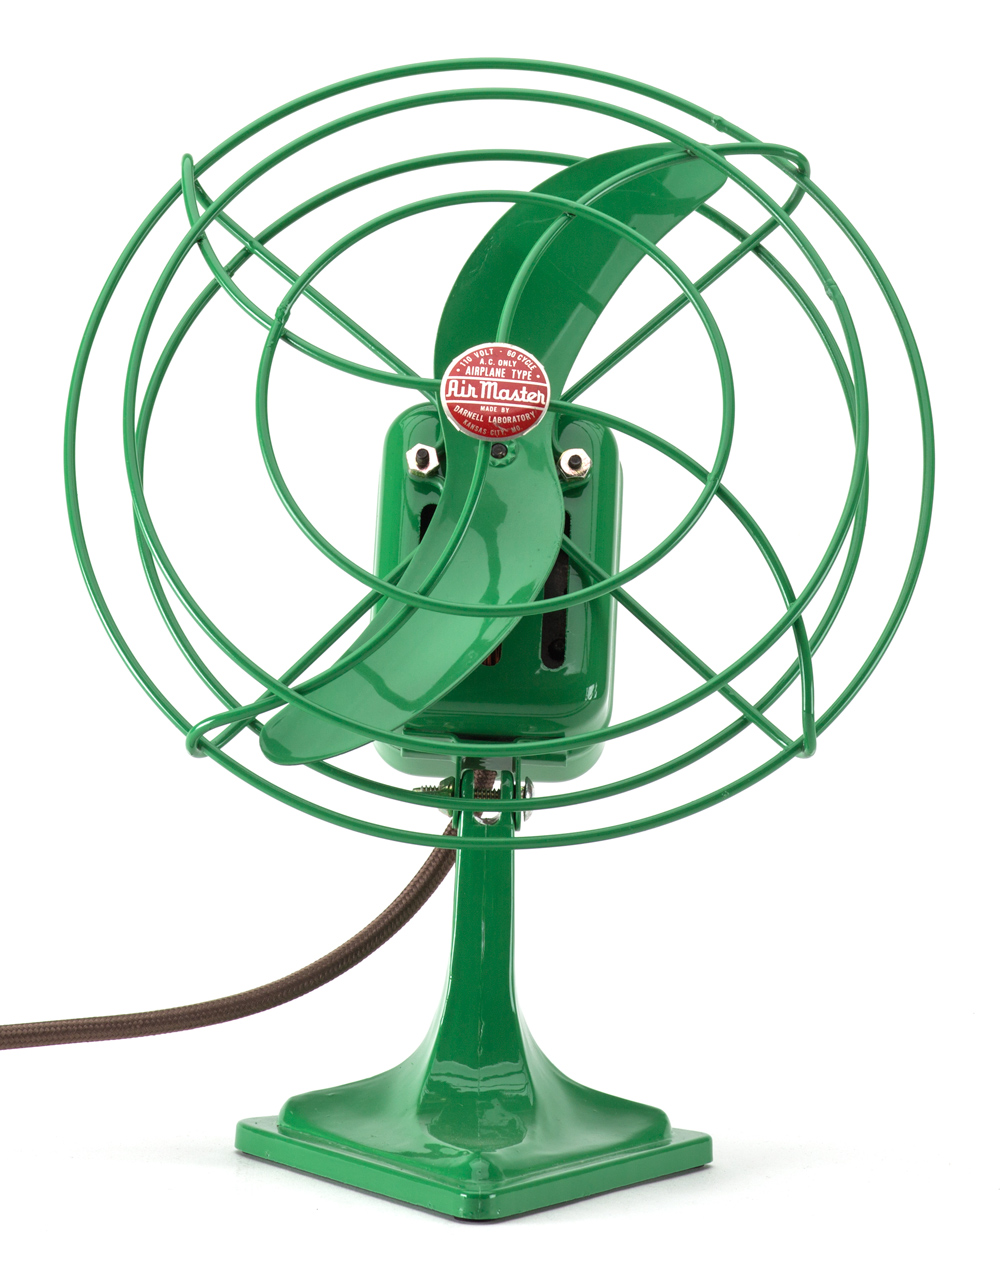 AIR-MASTER-Restored-Green-Fan-RAH_6136.F13-Edit.jpg